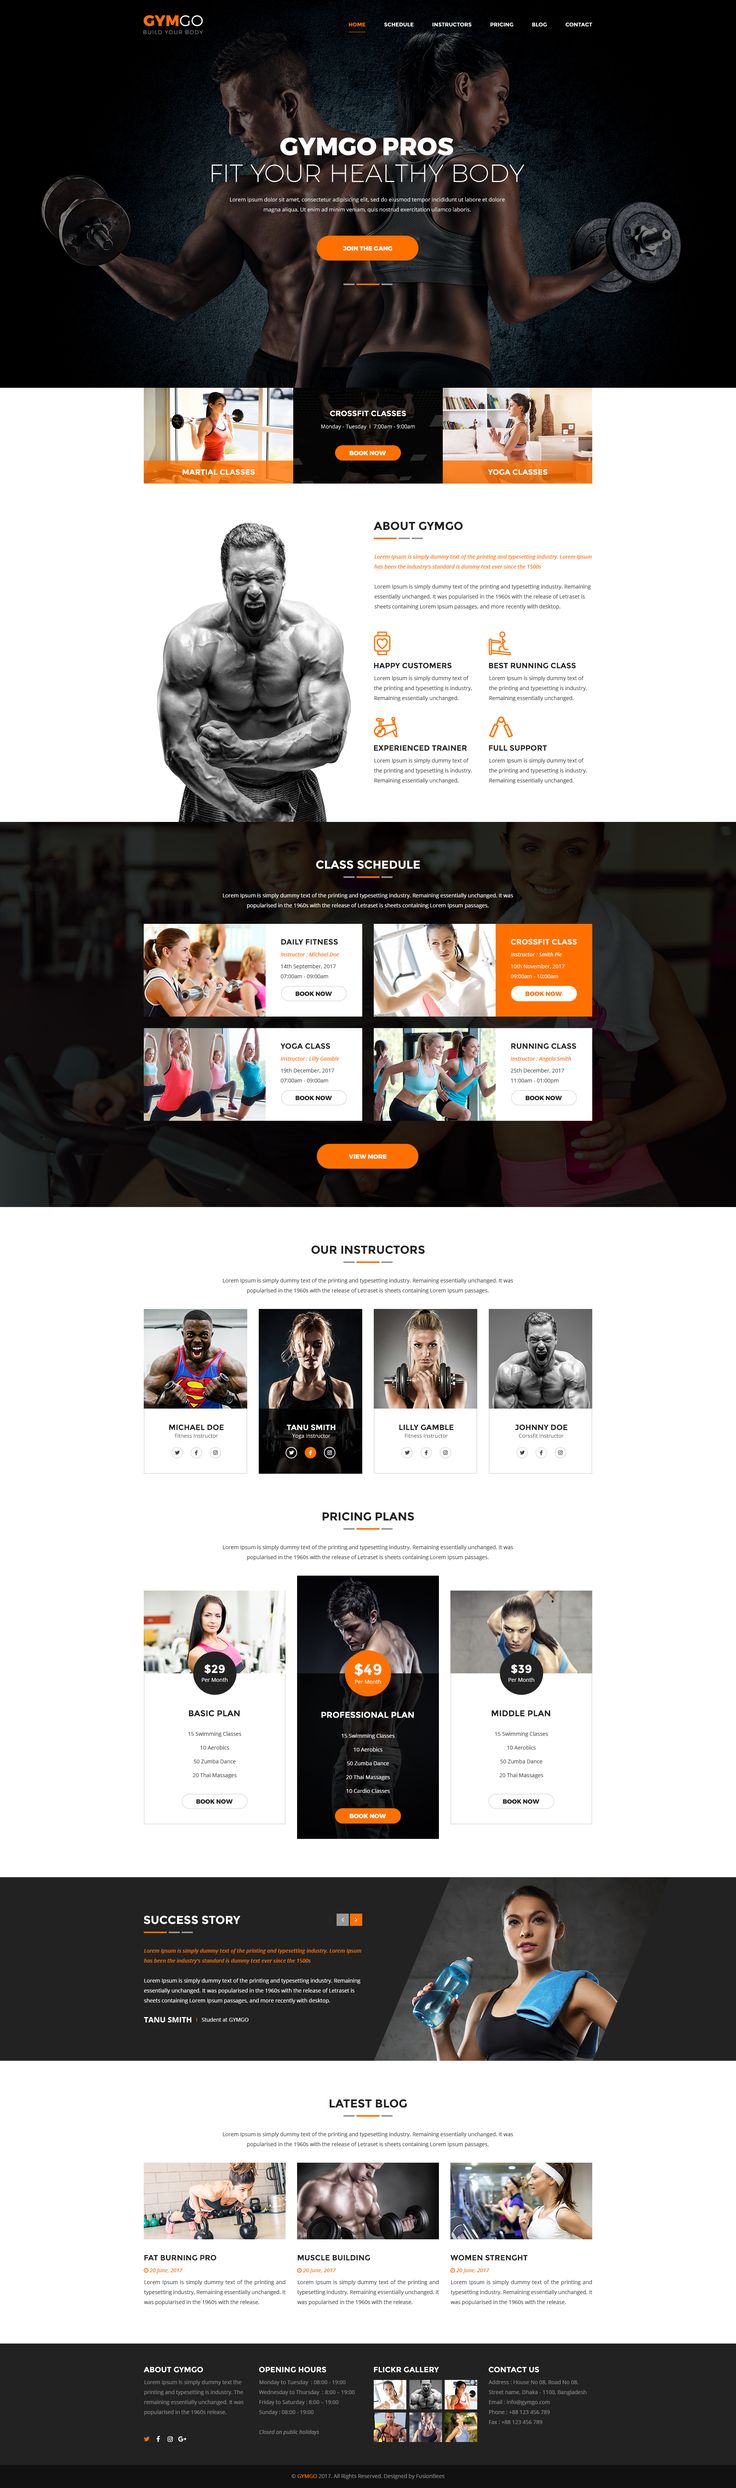 GYMGO-Gym & Fitness PSD Template #personal trainer #weight lifting #weight loss • Download ➝ https://themeforest.net/item/gymgogym-fitness-psd-template/20923583?ref=pxcr